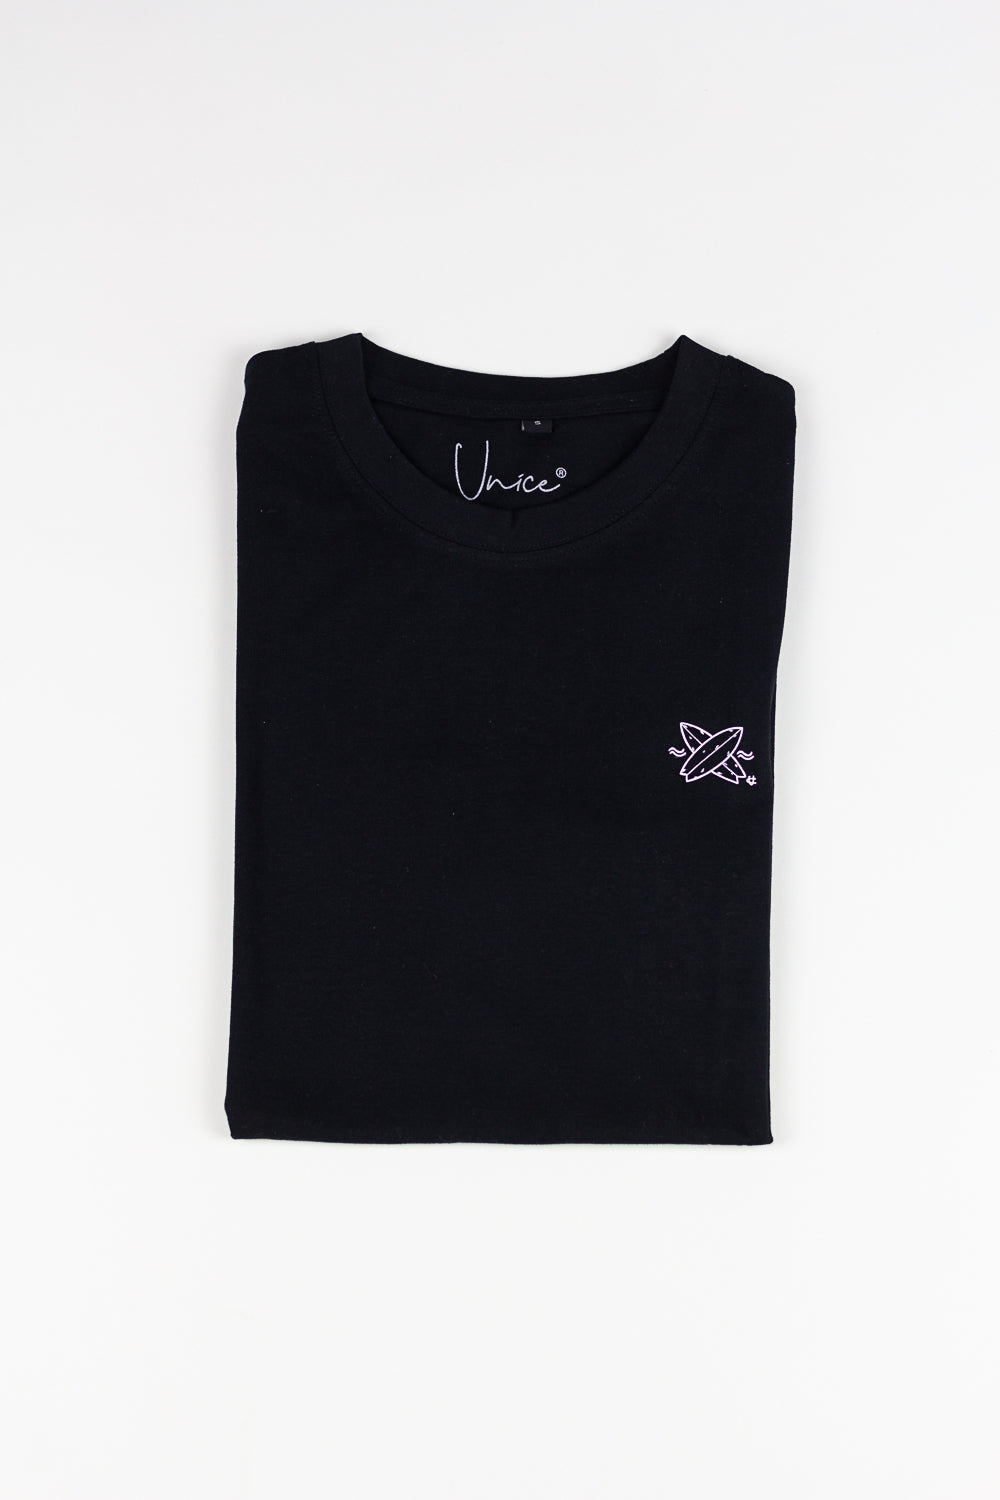 2. Unice T-shirt Surfboards BLACK